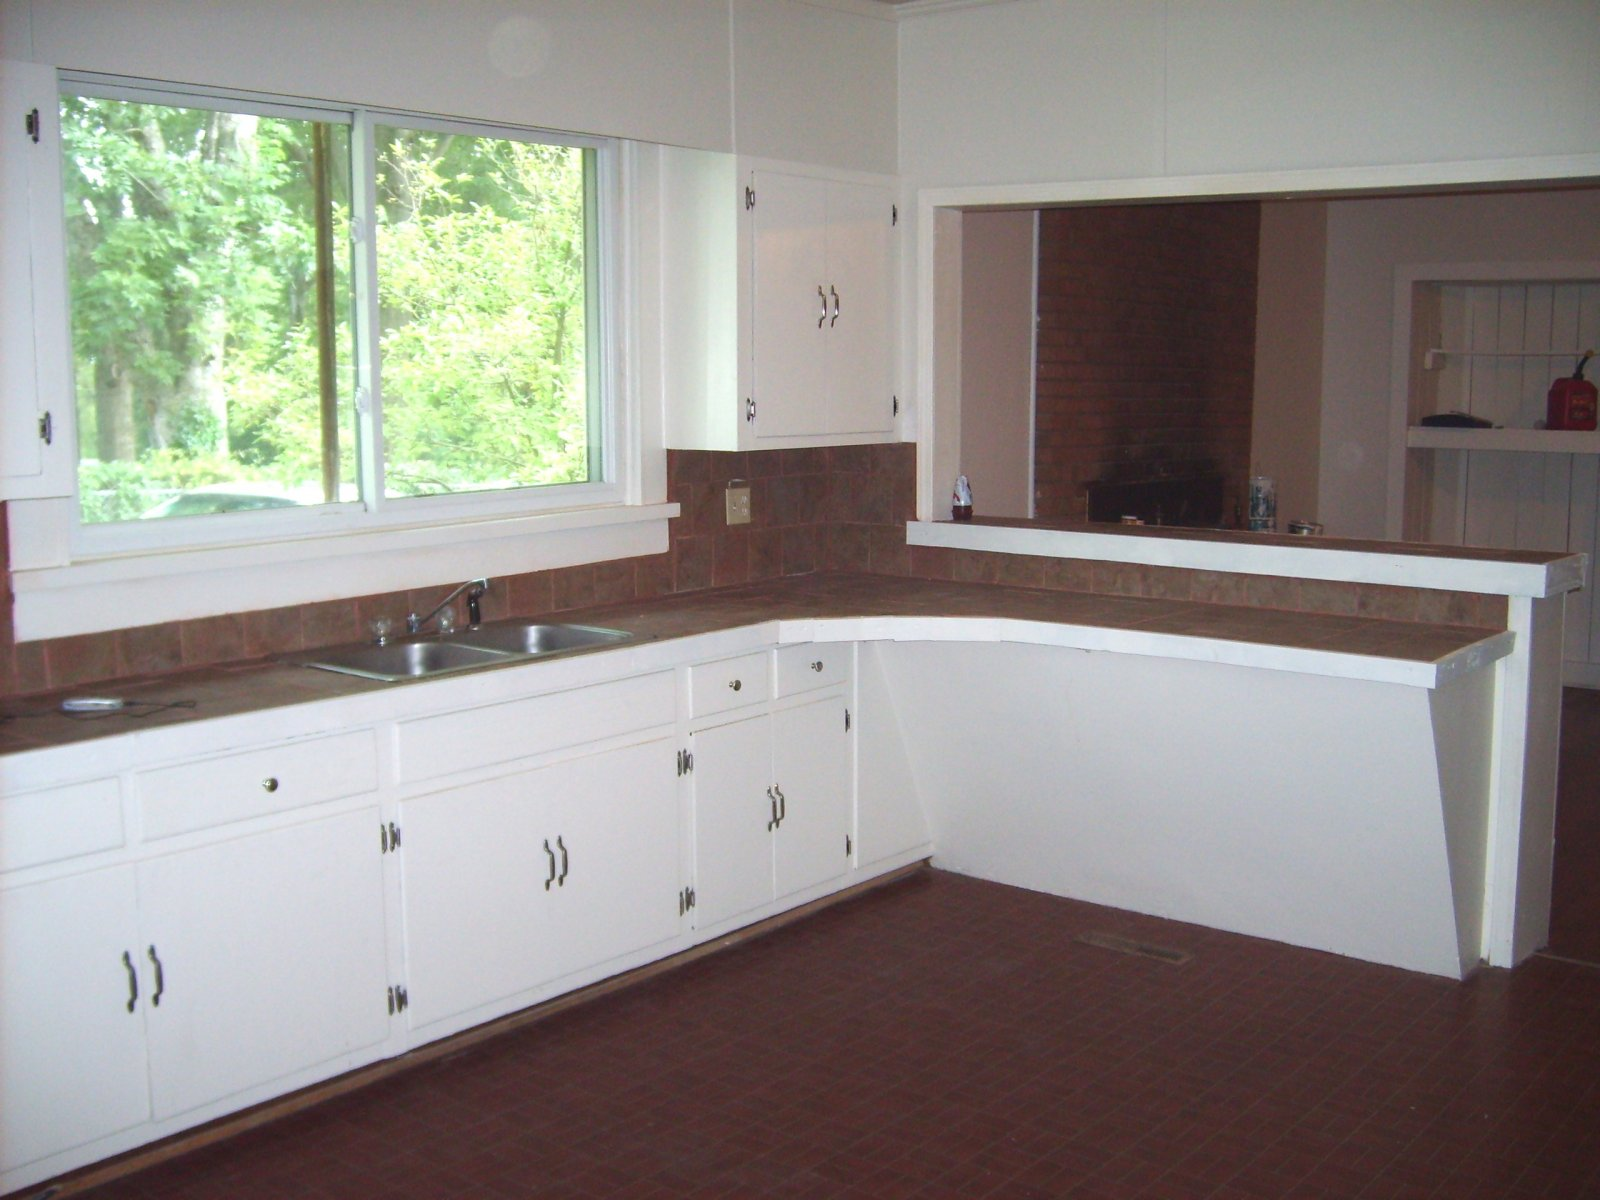 8th kitchen 1 after